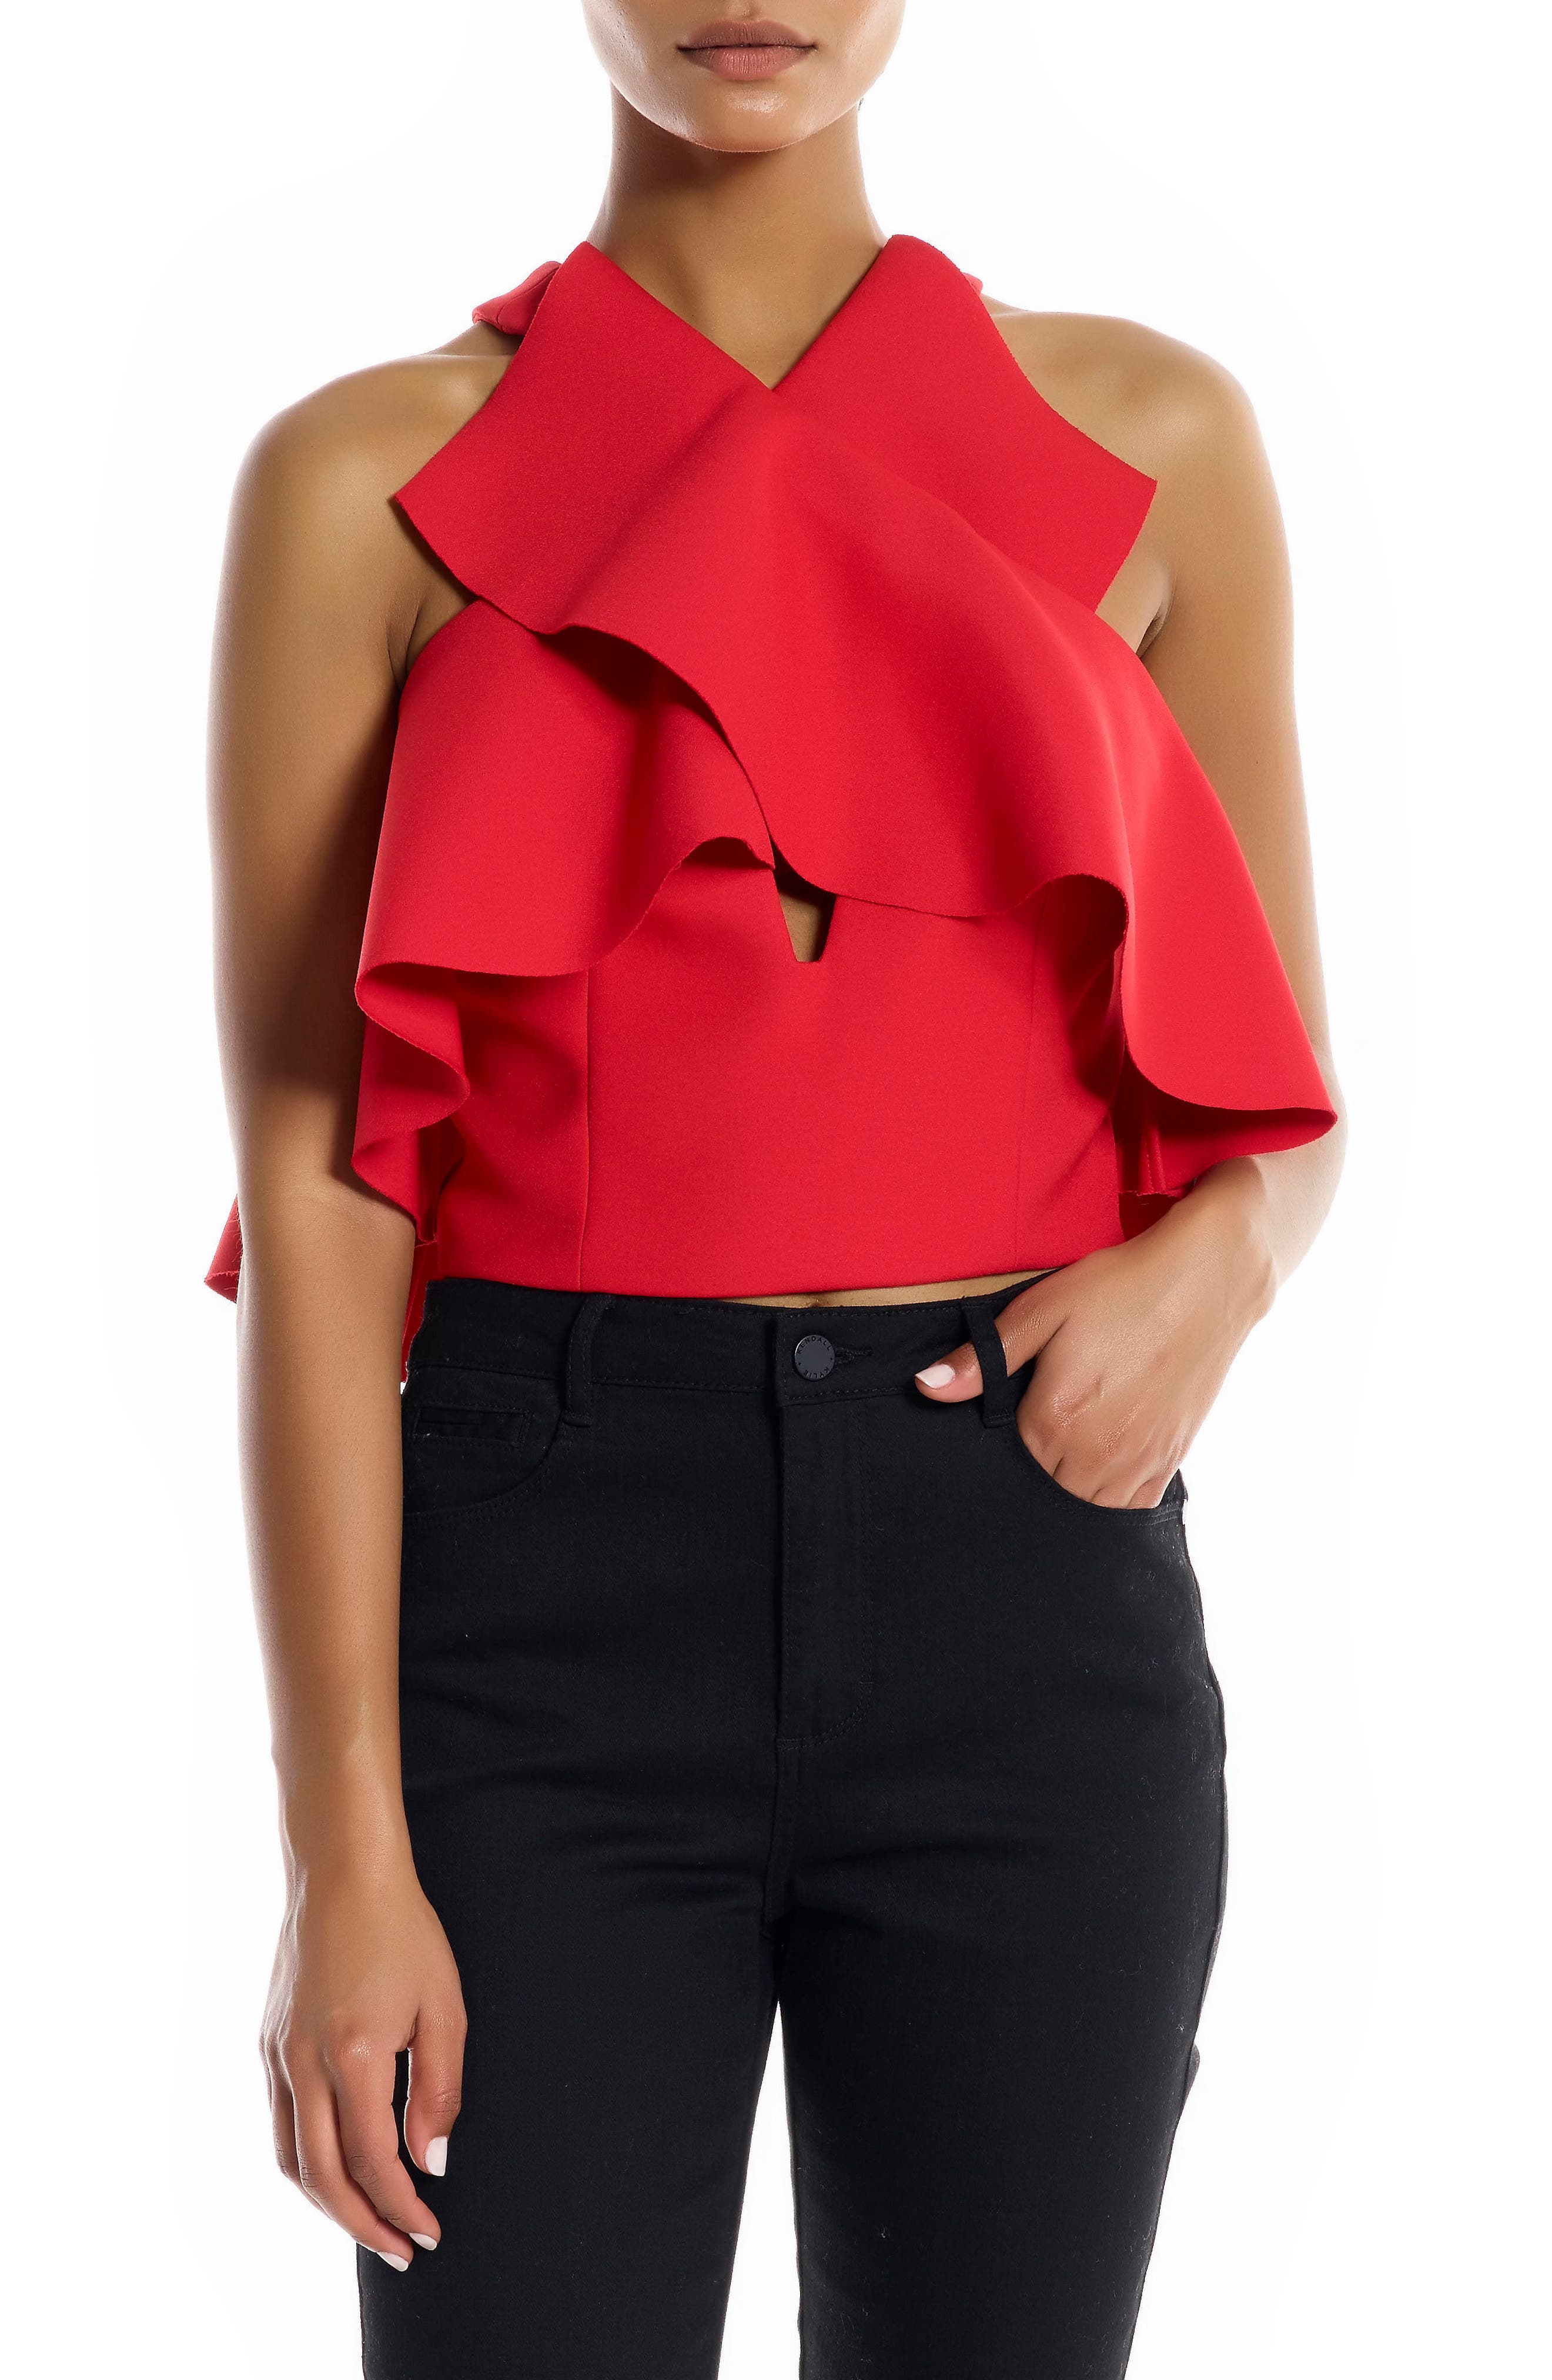 Overlap Ruffle Crop Top,                             Main thumbnail 1, color,                             Bright Red